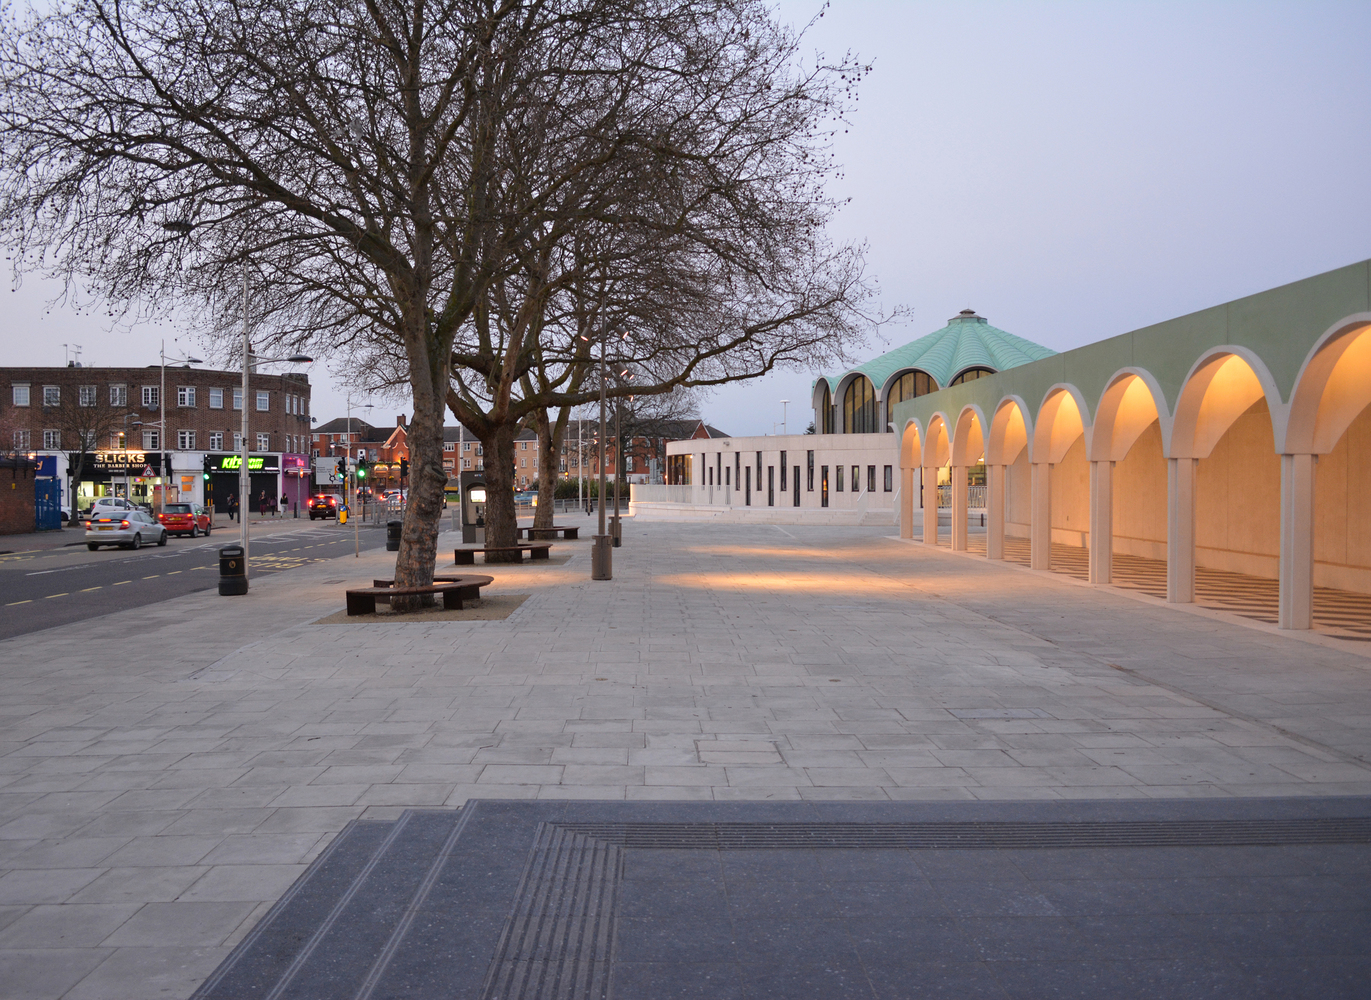 barkingside townsquare